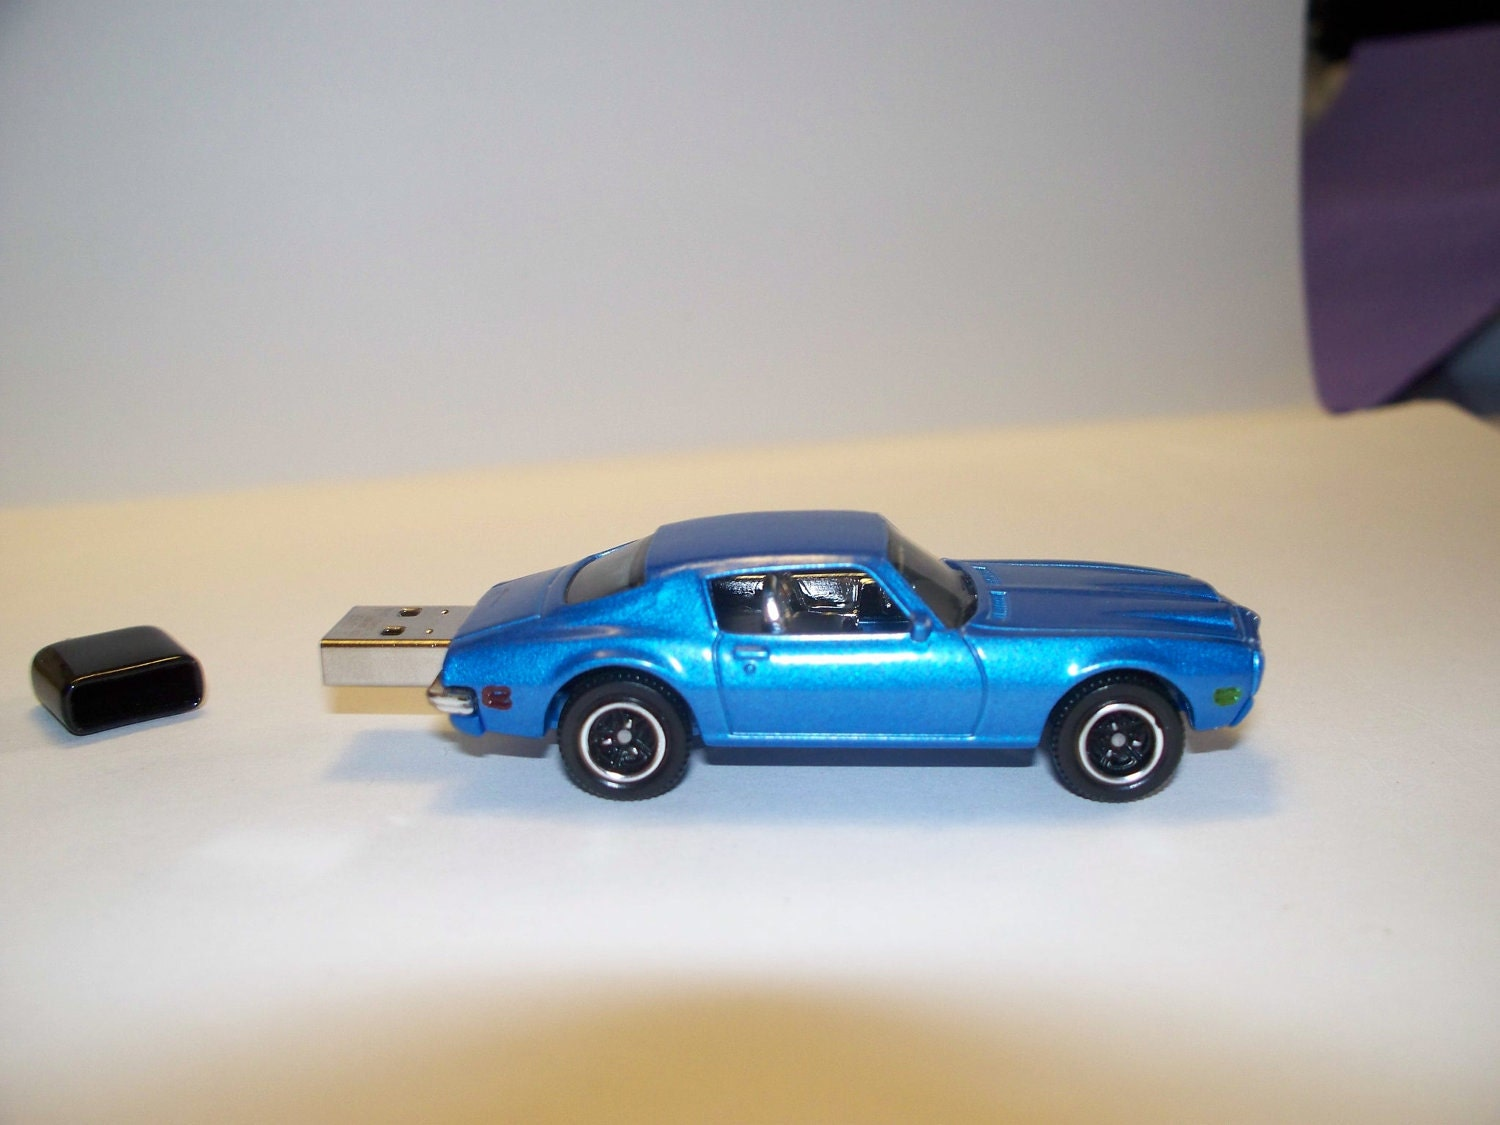 4GB 1971 Pontiac Firebird blue 4gb USB Flash Drive car Free Shipping